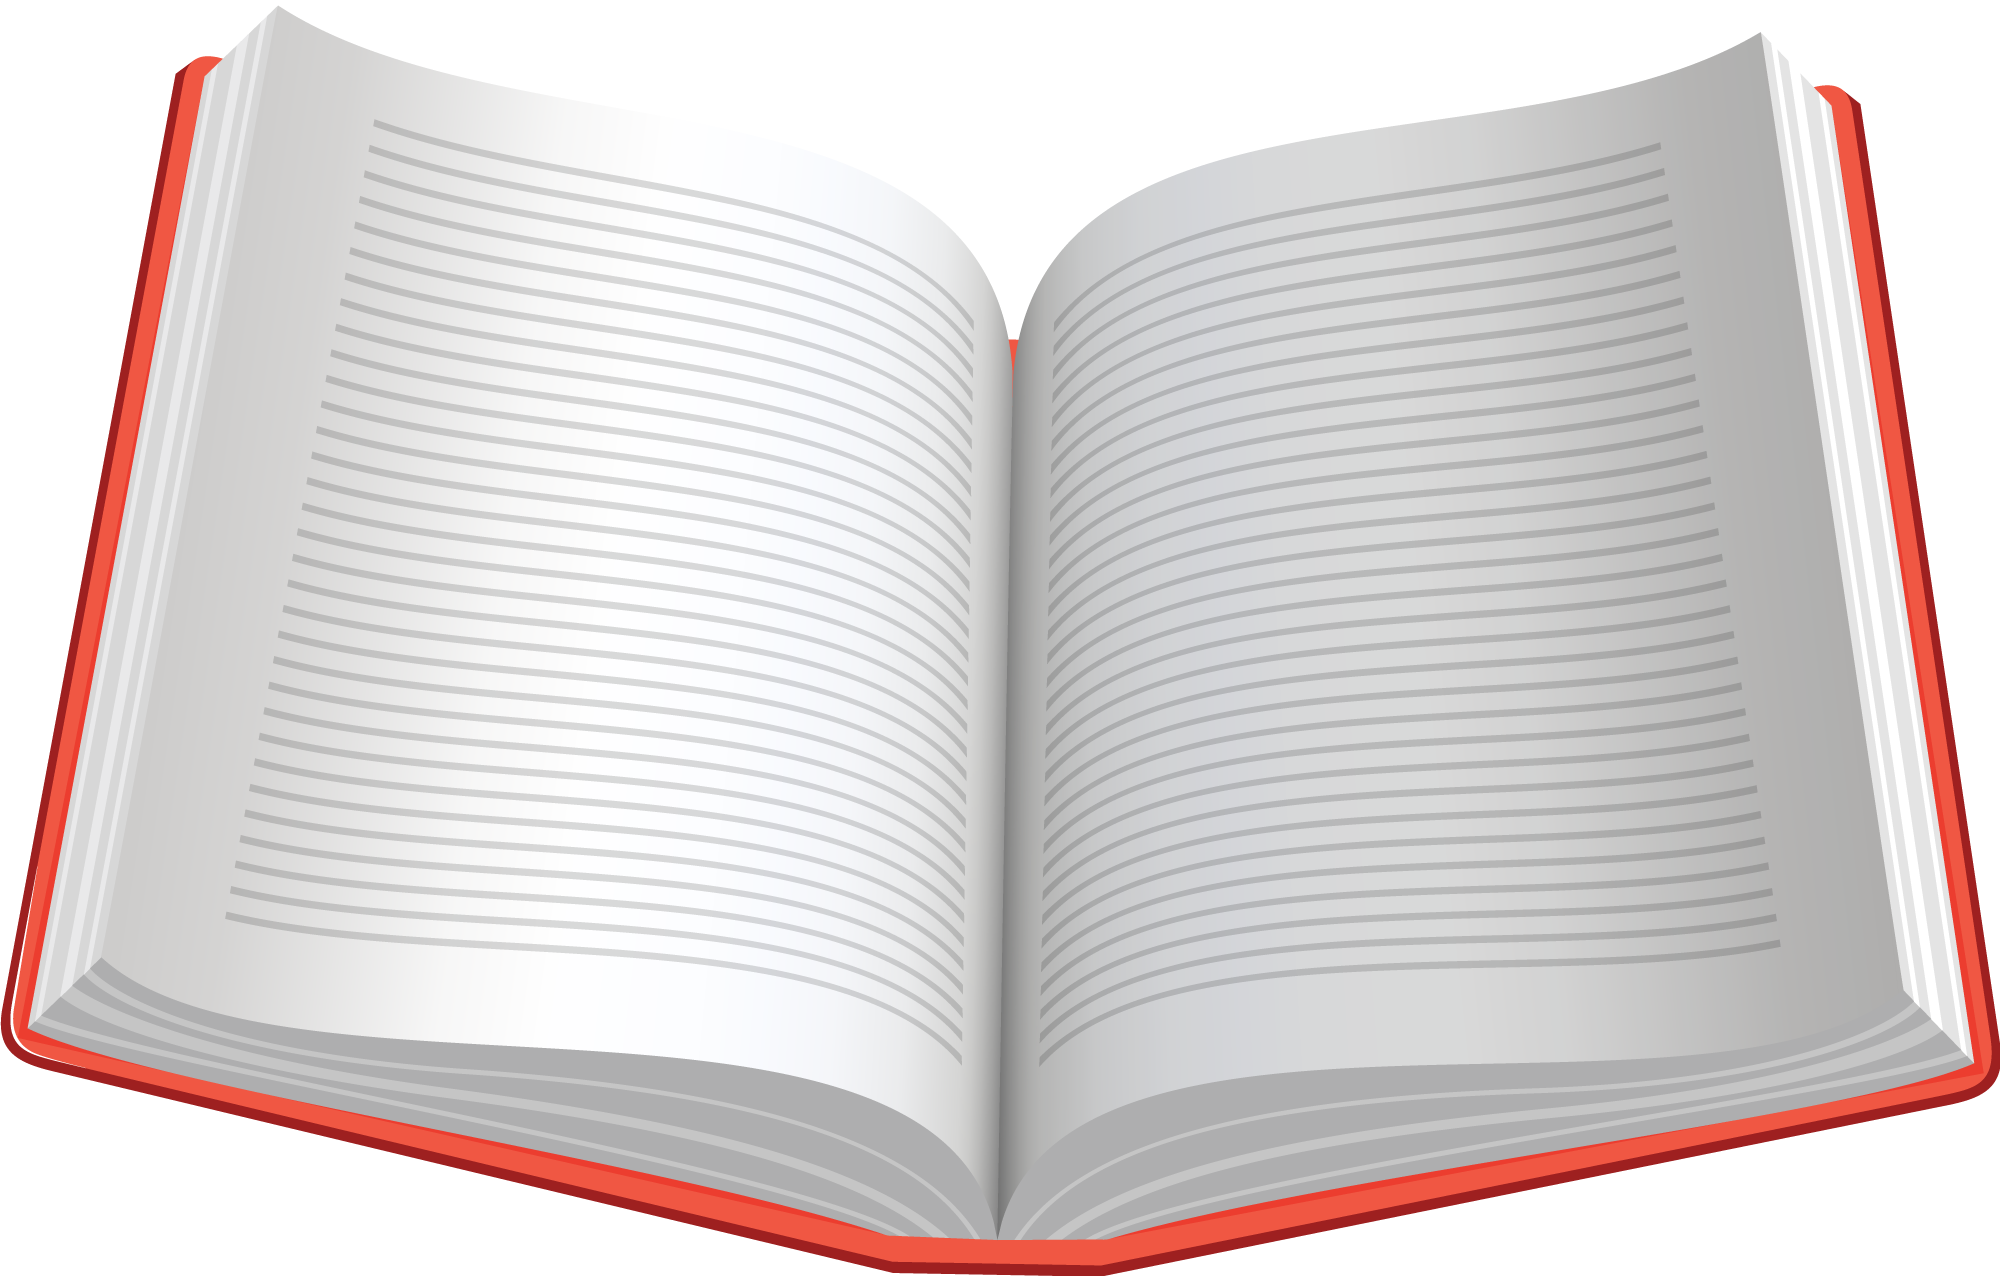 2000x1276 Book Picture Png